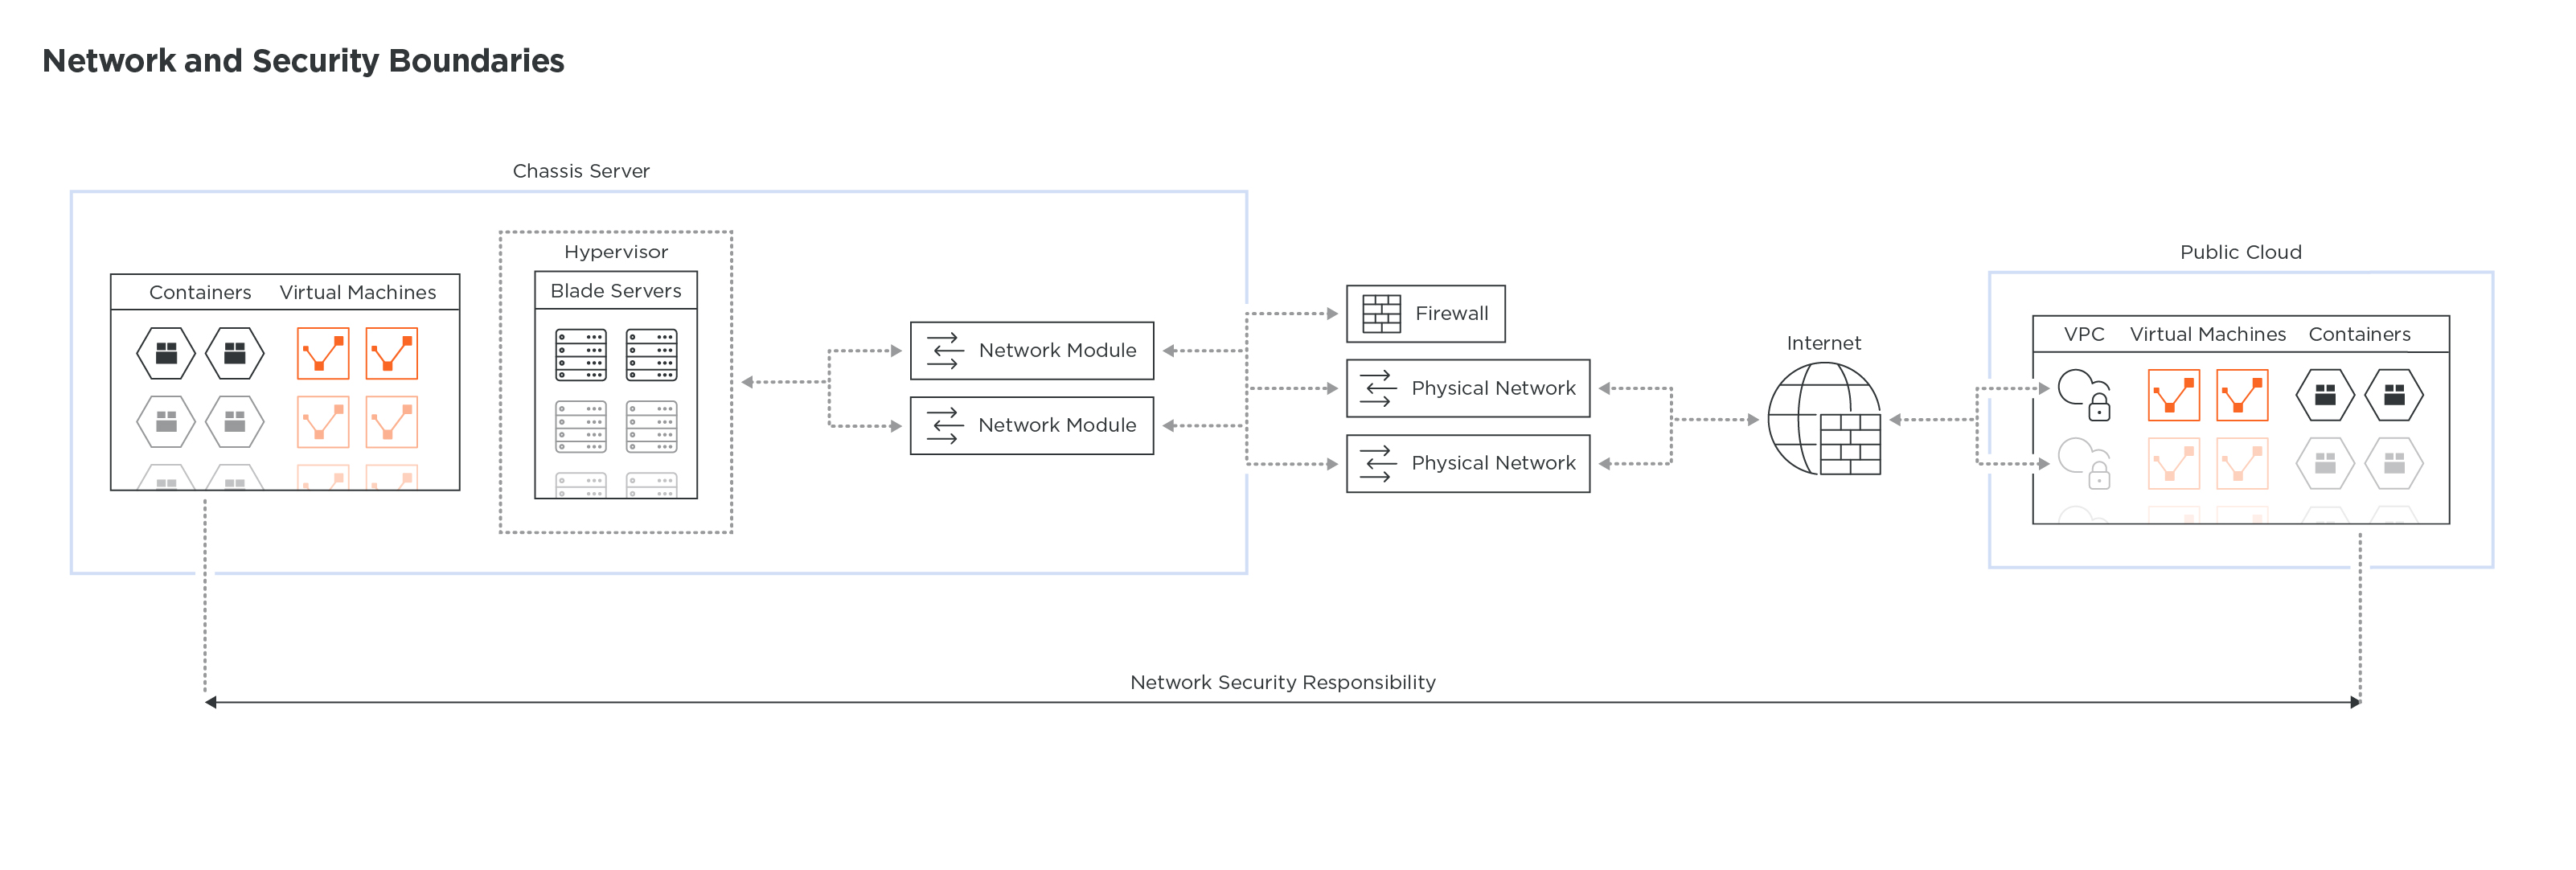 Network_And_Security_Boundaries_Technical_Diagrams_4